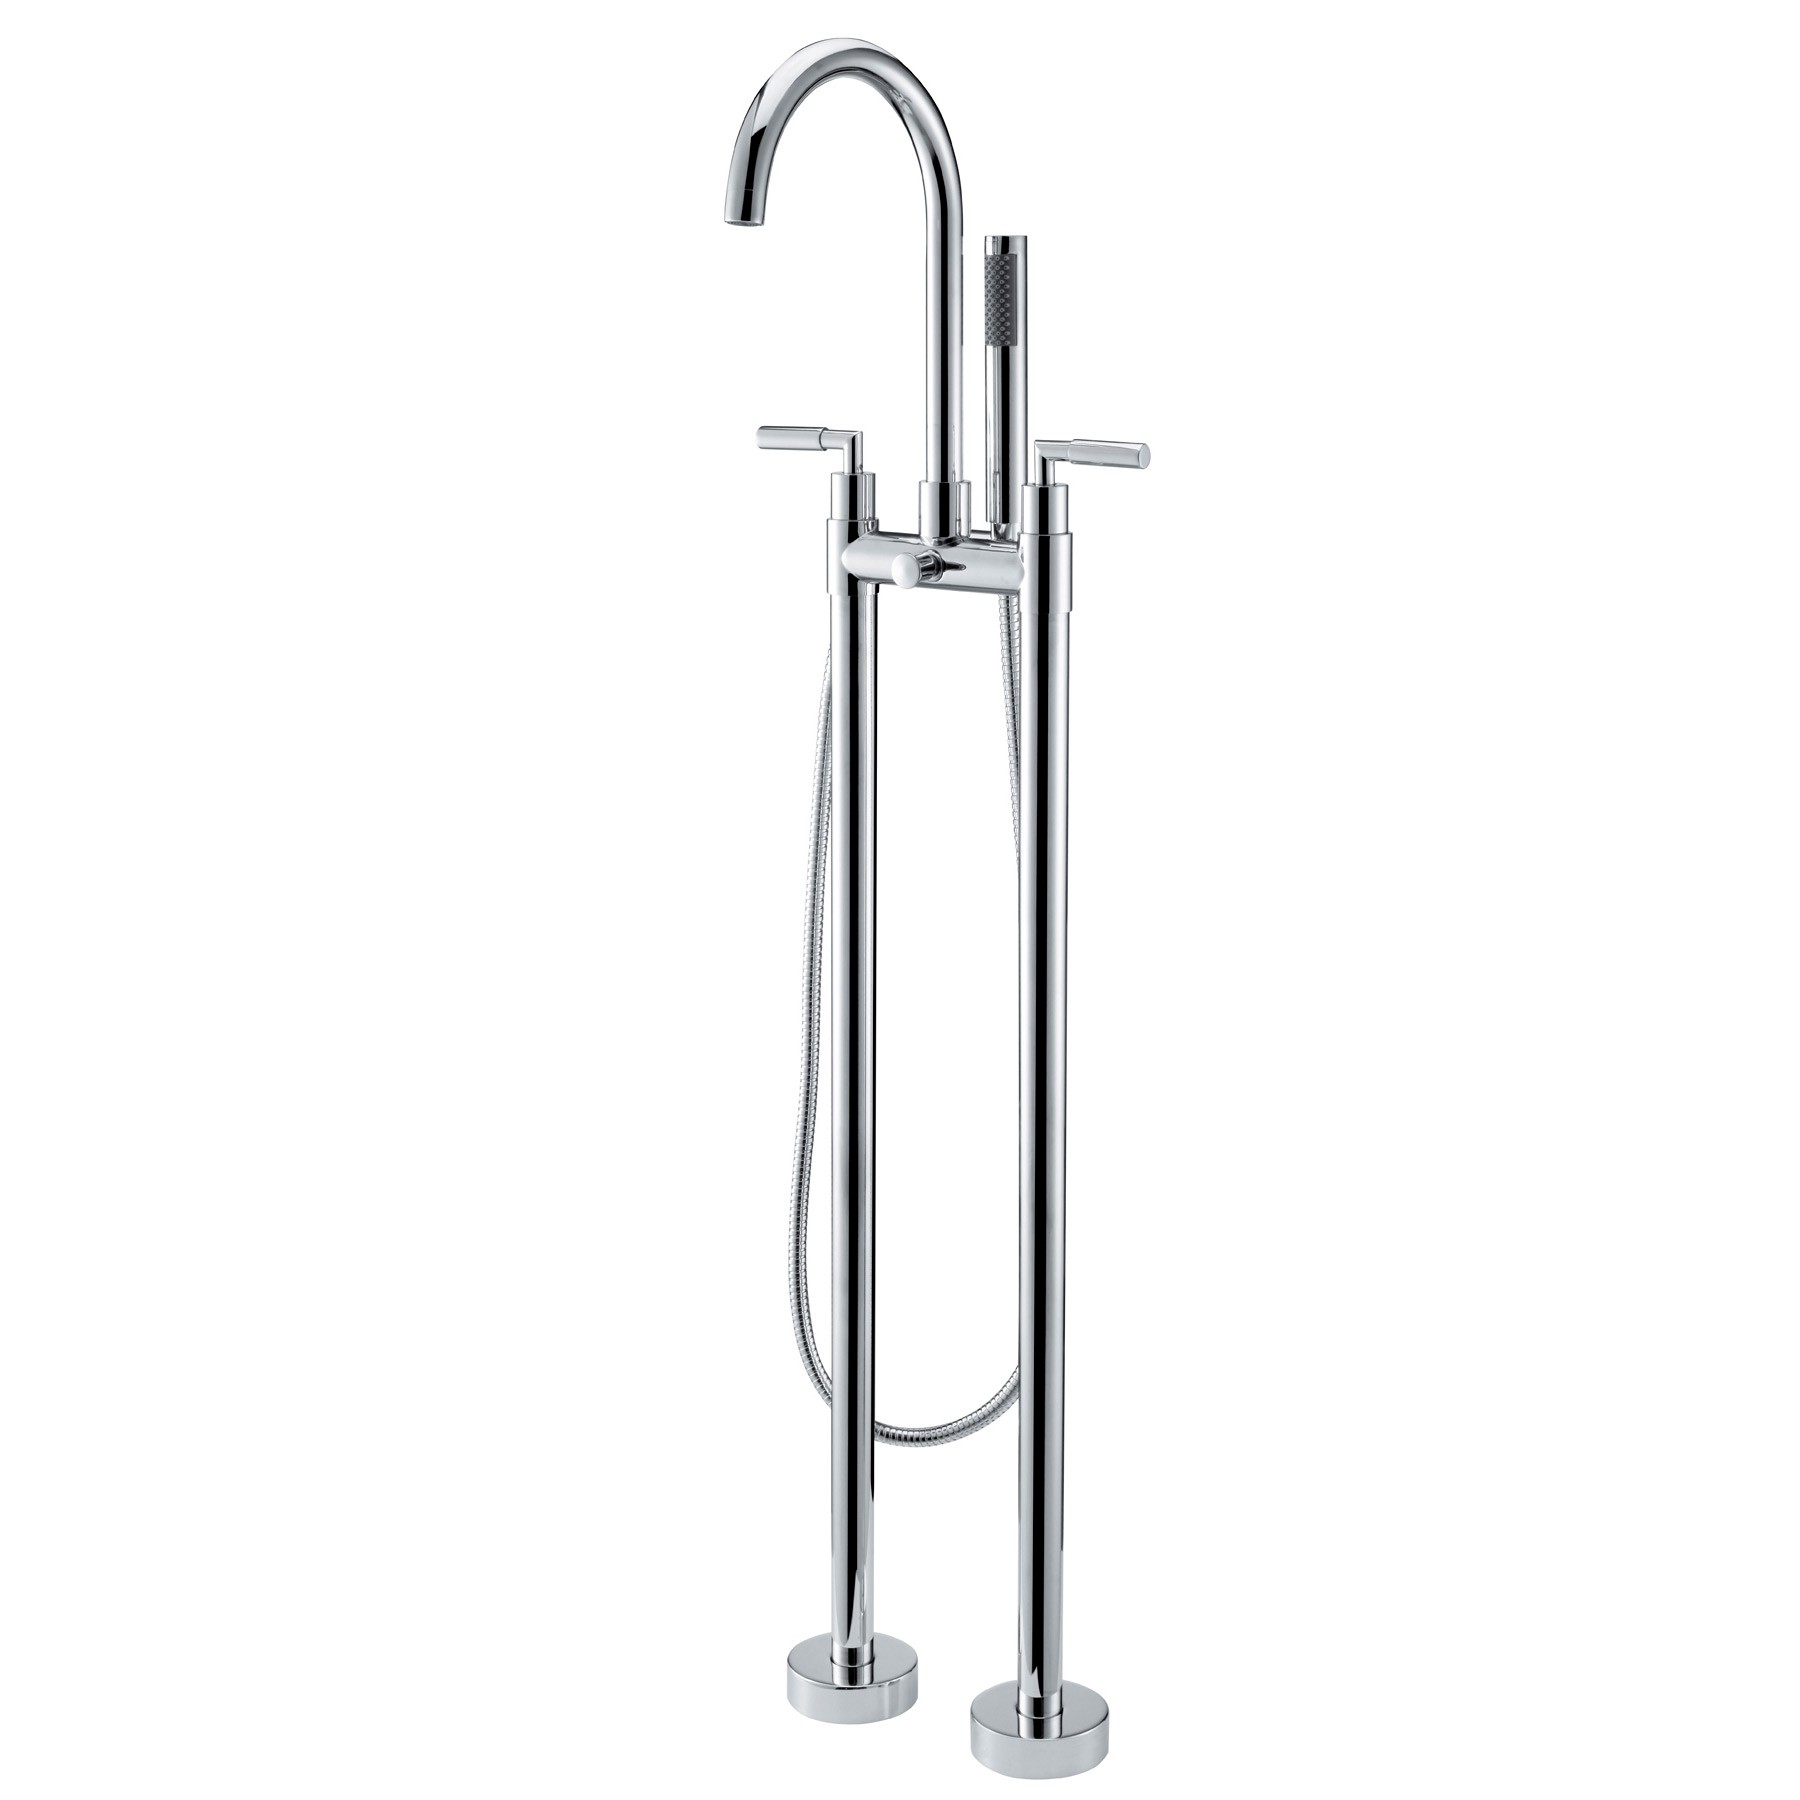 Best Stev Floor Mounted Clawfoot Tub Filler Faucet For